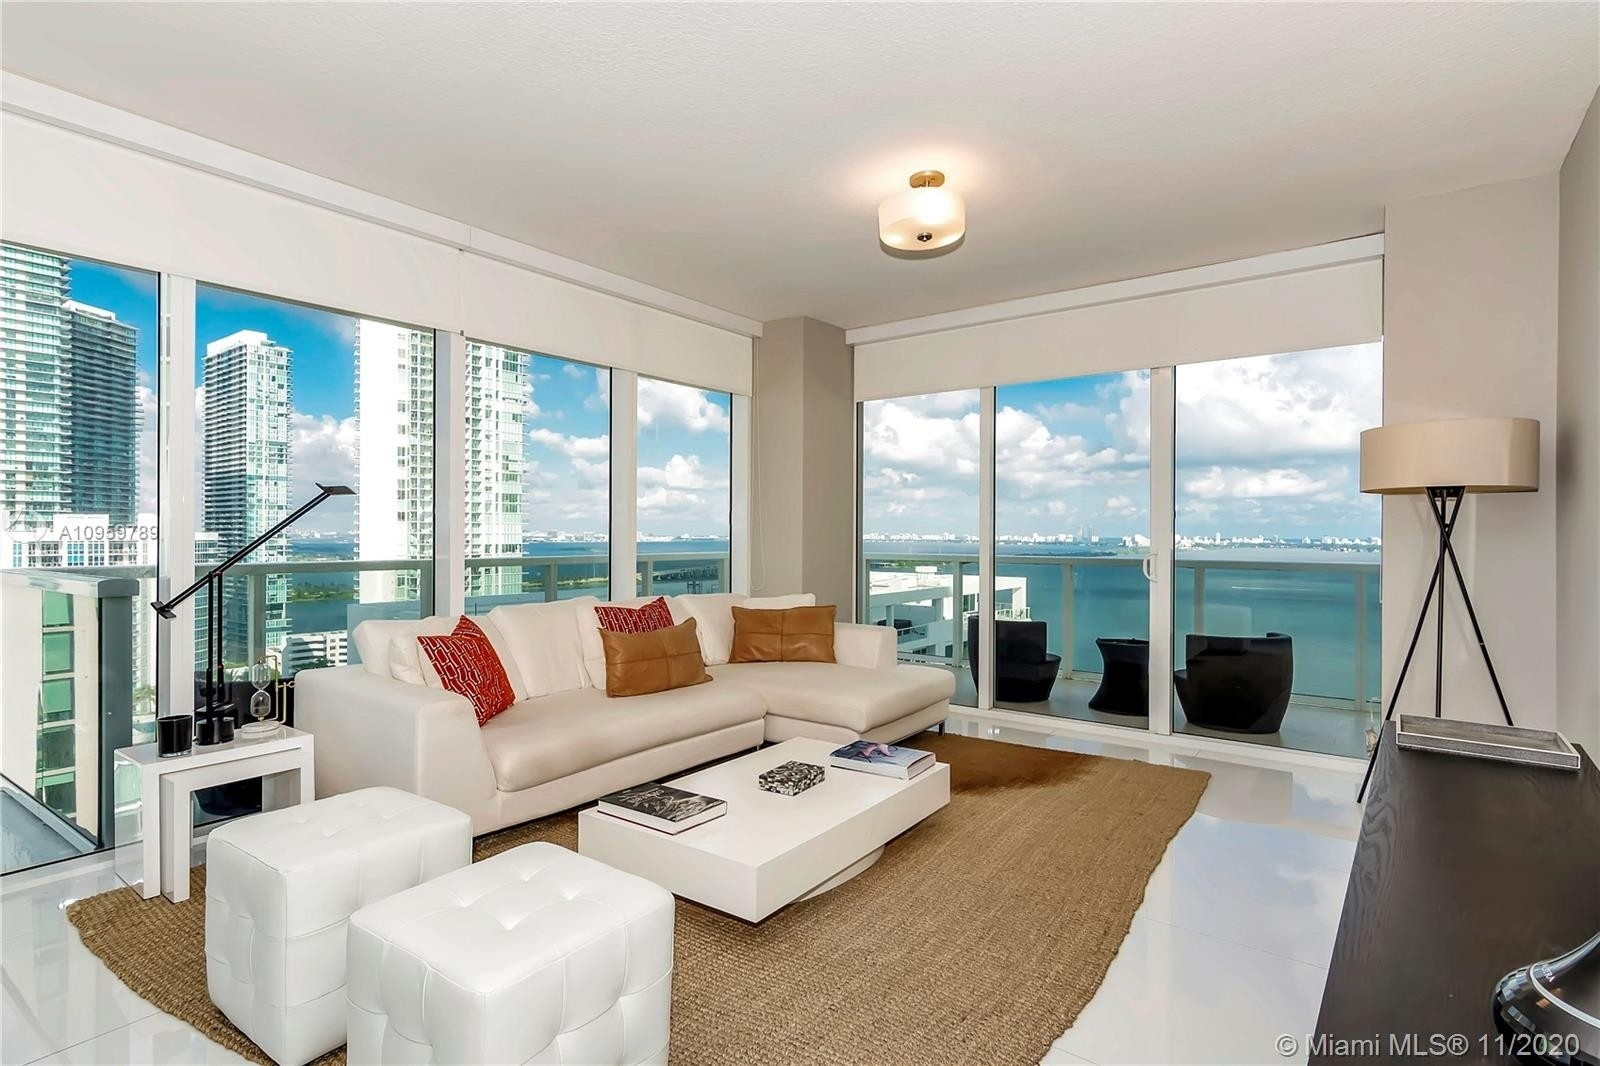 Property at 600 NE 27th St , 2401 Miami